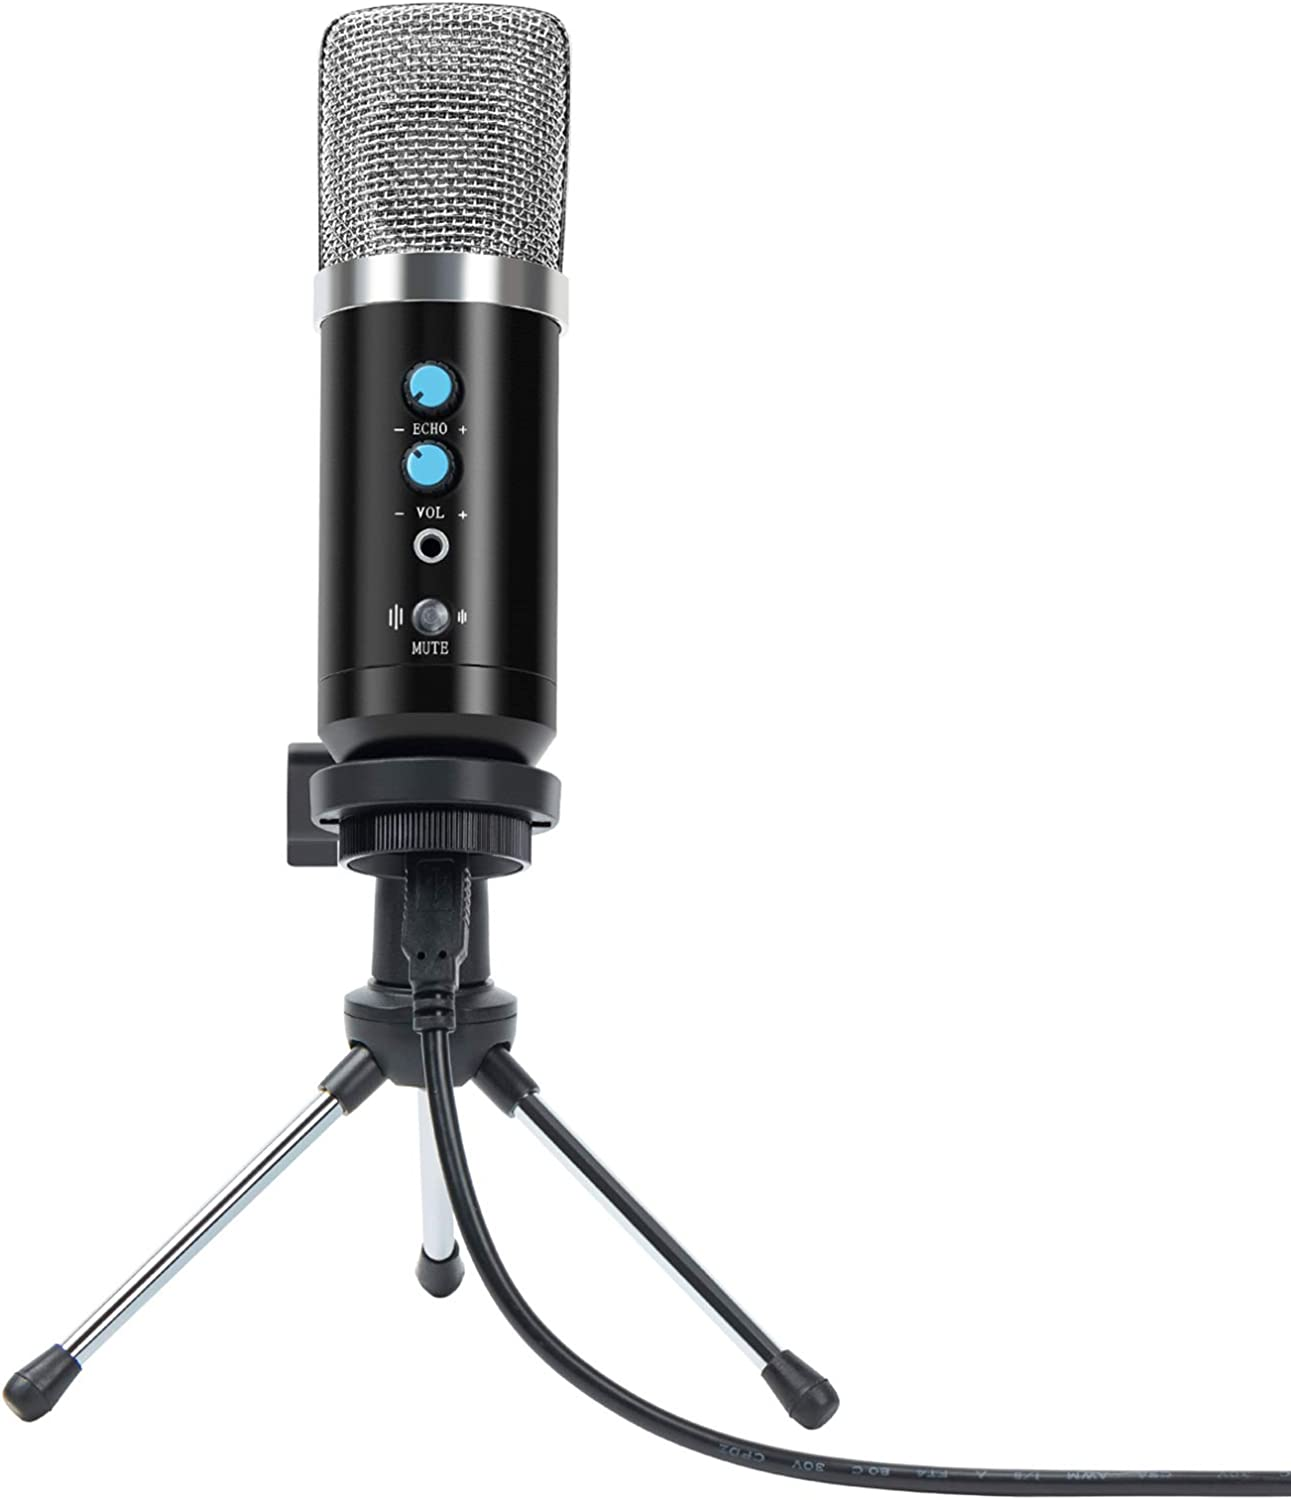 USB Microphone,VISMIX Condenser Microphone for PC Computer Laptop with Reverb Adjustment Cardioid Recording Mic for Podcast,Chatting, Gaming, Streaming, Broadcast,etc